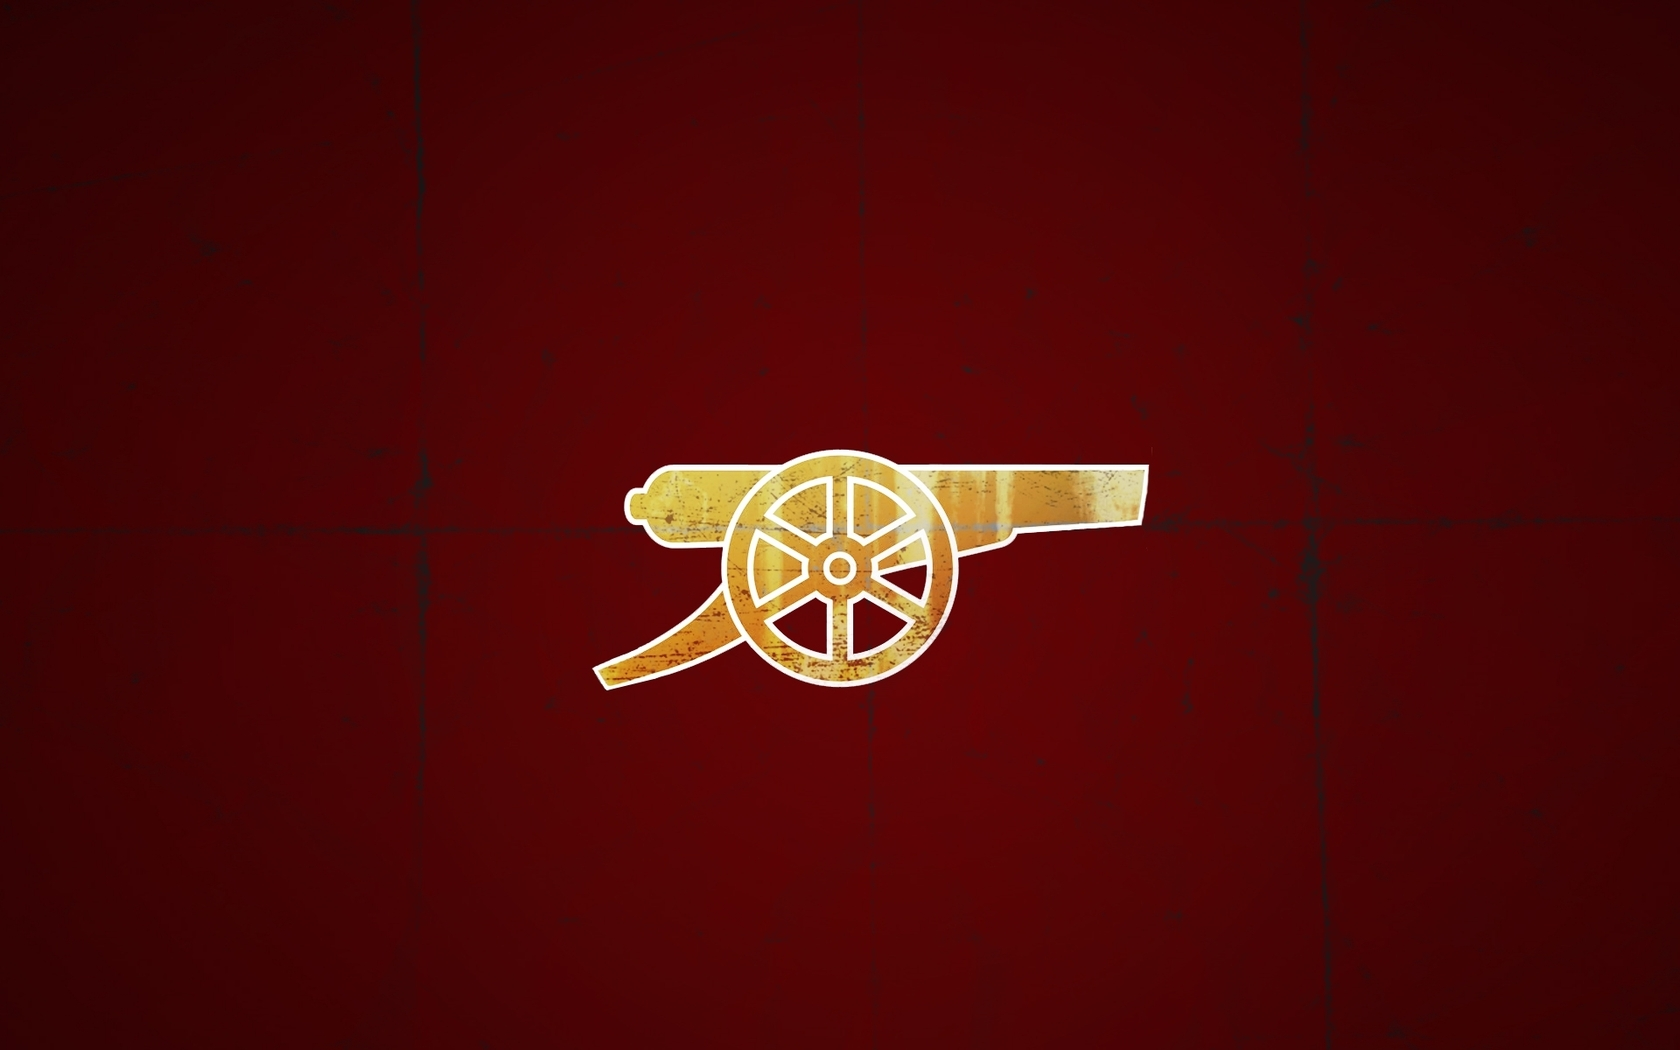 Arsenal Football Club logo wallpaper 18767 1680x1050